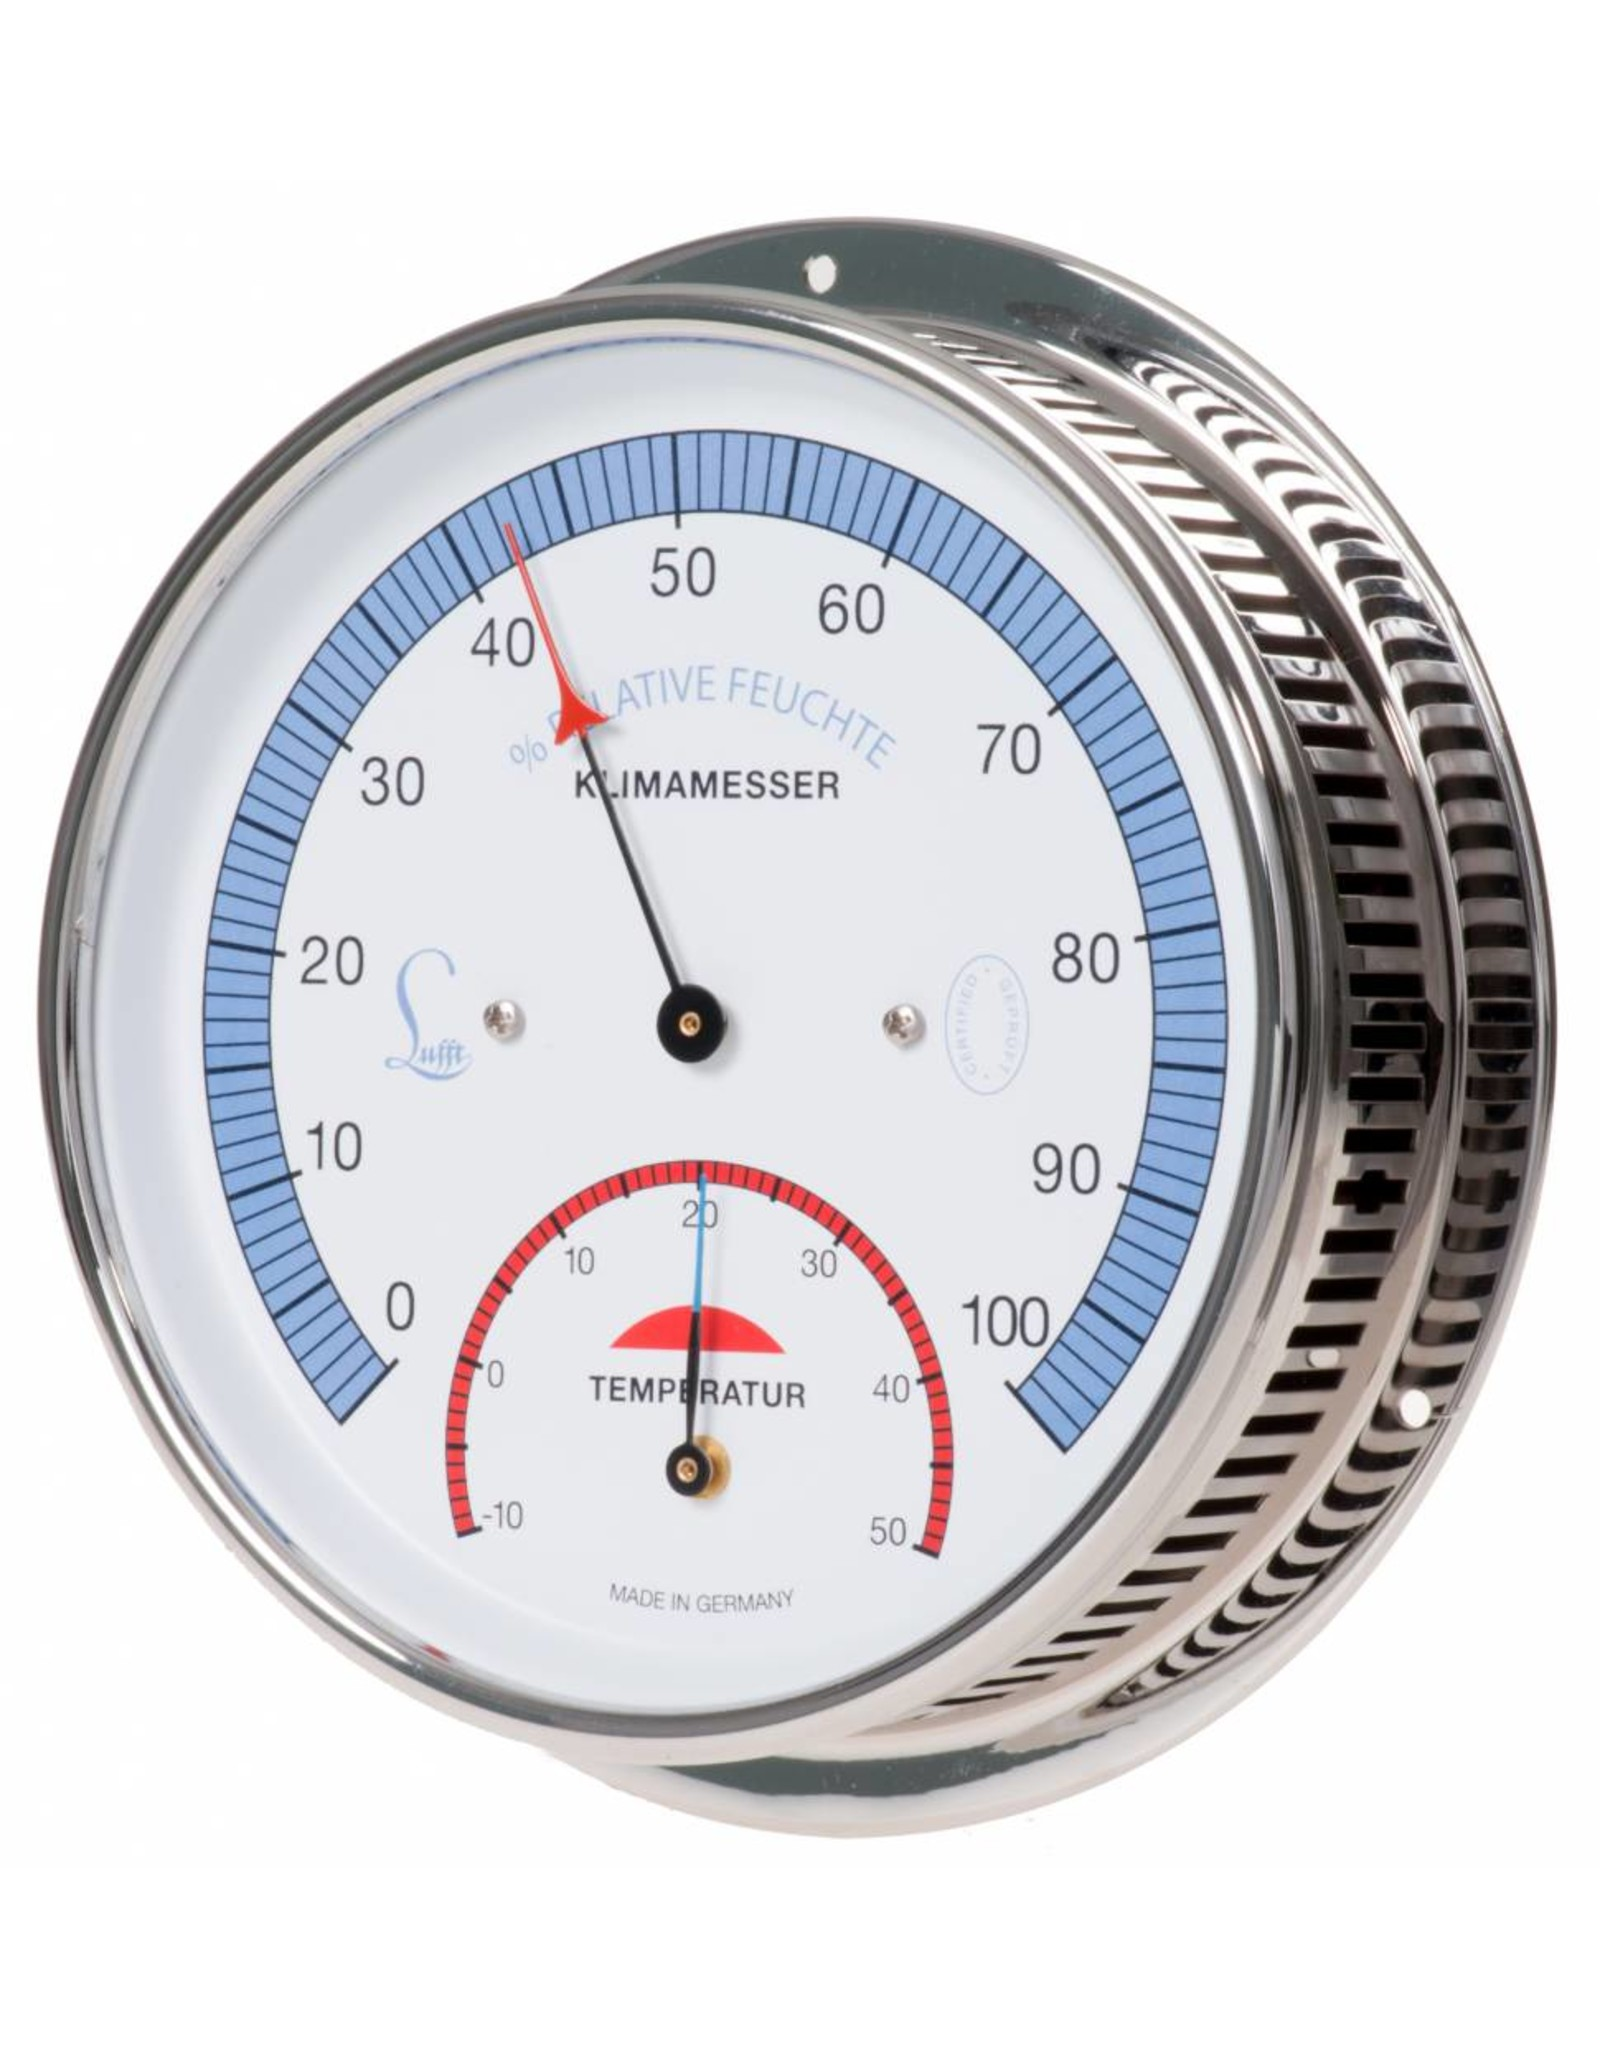 Lufft 001 Hygrometer en thermometer, messing verchroomde behuizing